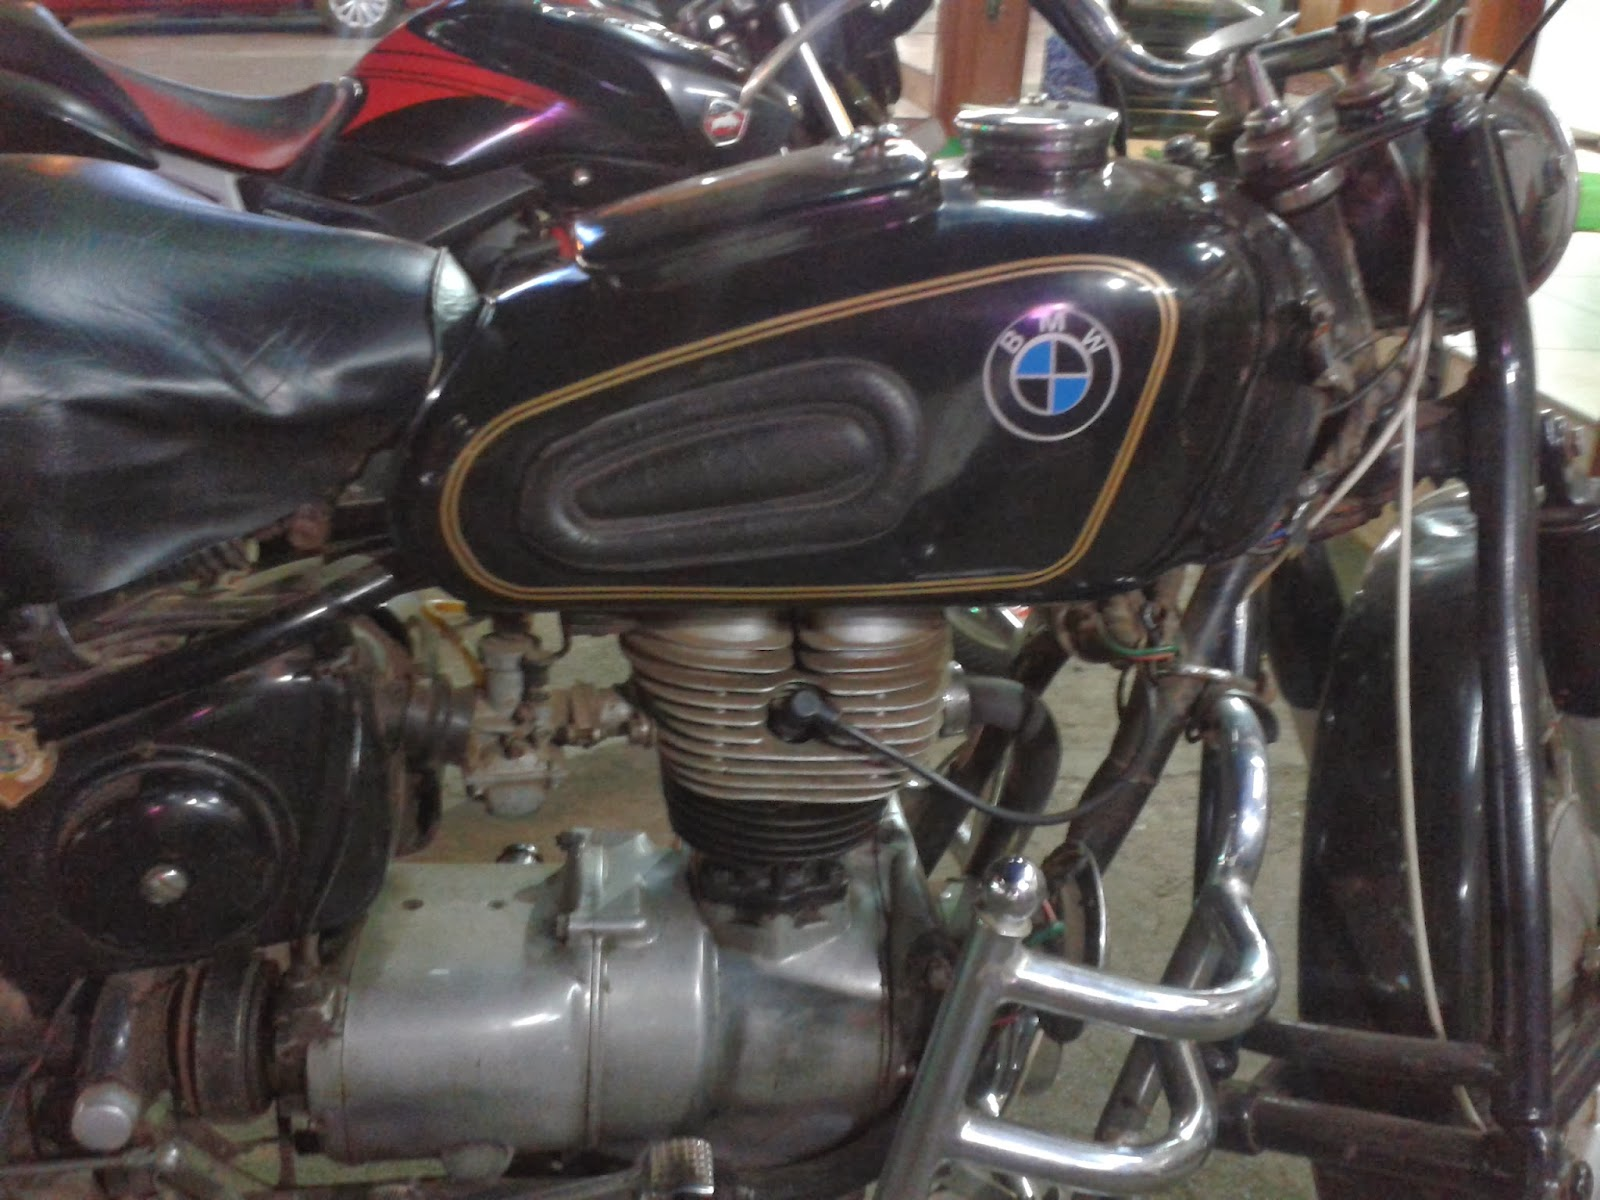 bmw classic motorcycle in India|bmw vintage motorcycles in India|bmw classic motorcycle in Kerala|bmw vintage motorcycle in Kerala| BMW vintage motorcycles in Thrissur| BMW classic motorbike in Thrissur| BMW R 27